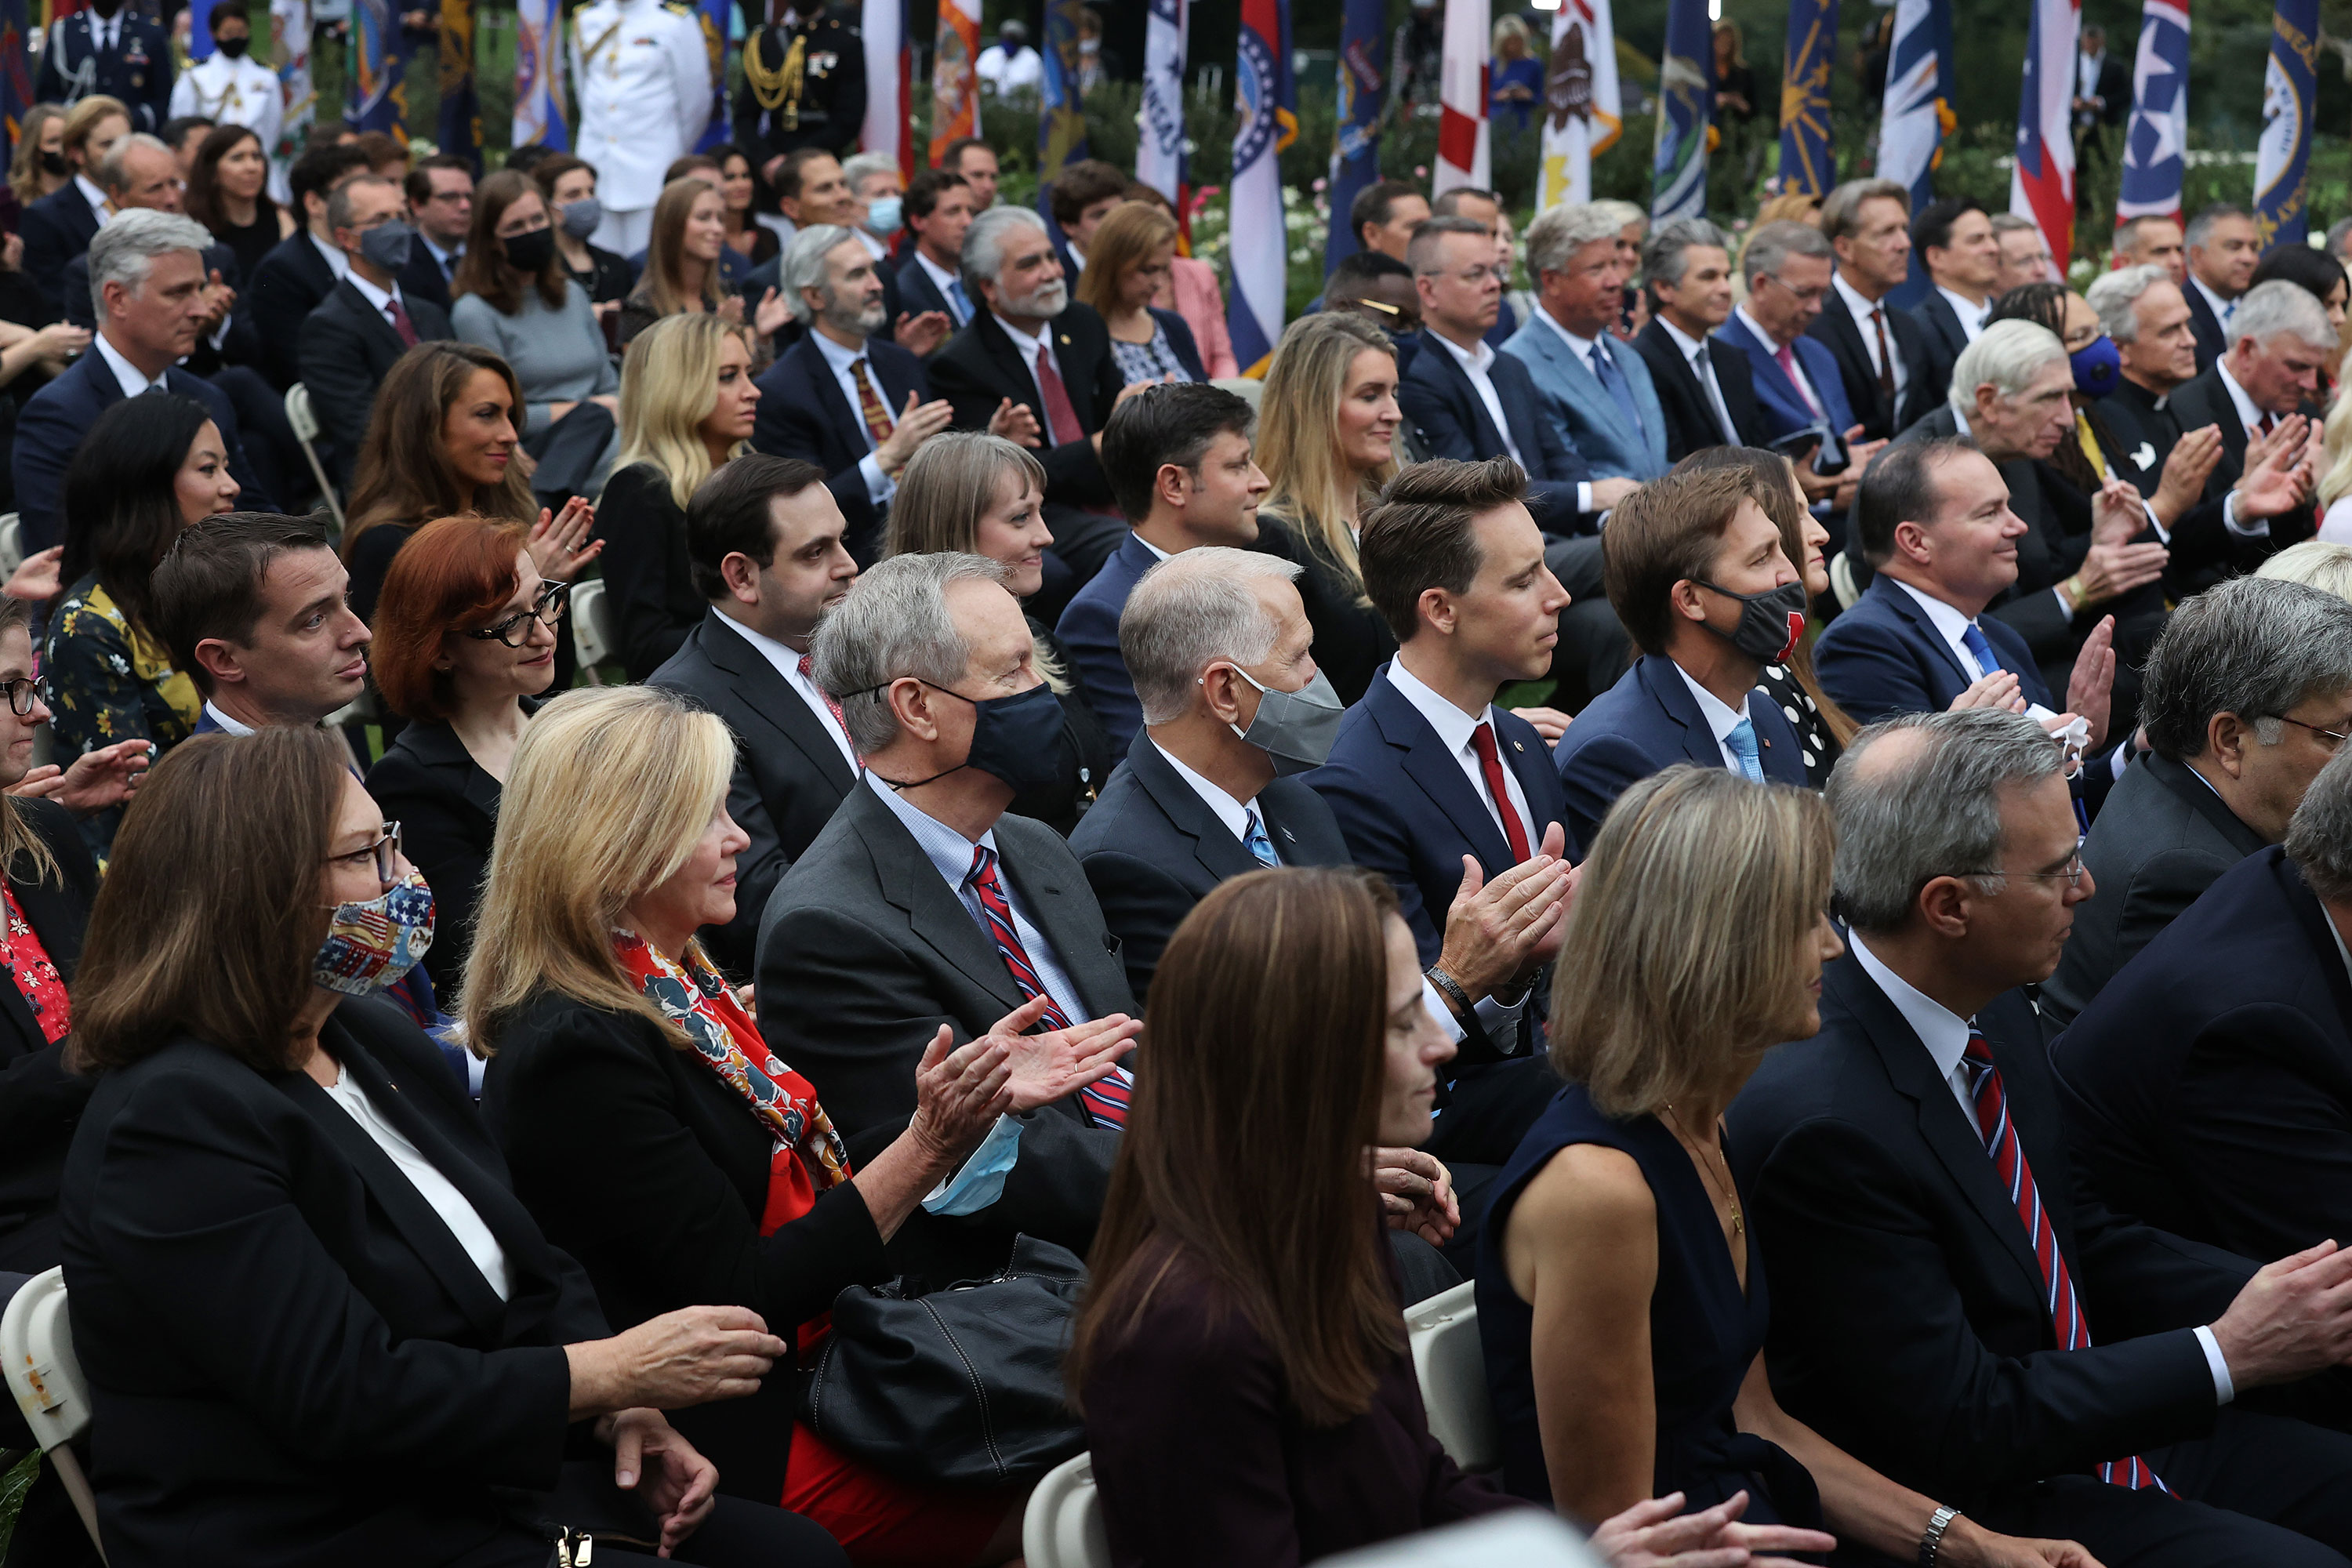 Guests sit in the Rose Garden as President Donald Trump introduces Judge Amy Coney Barrett as his nominee to the Supreme Court on September 26 in Washington, DC.